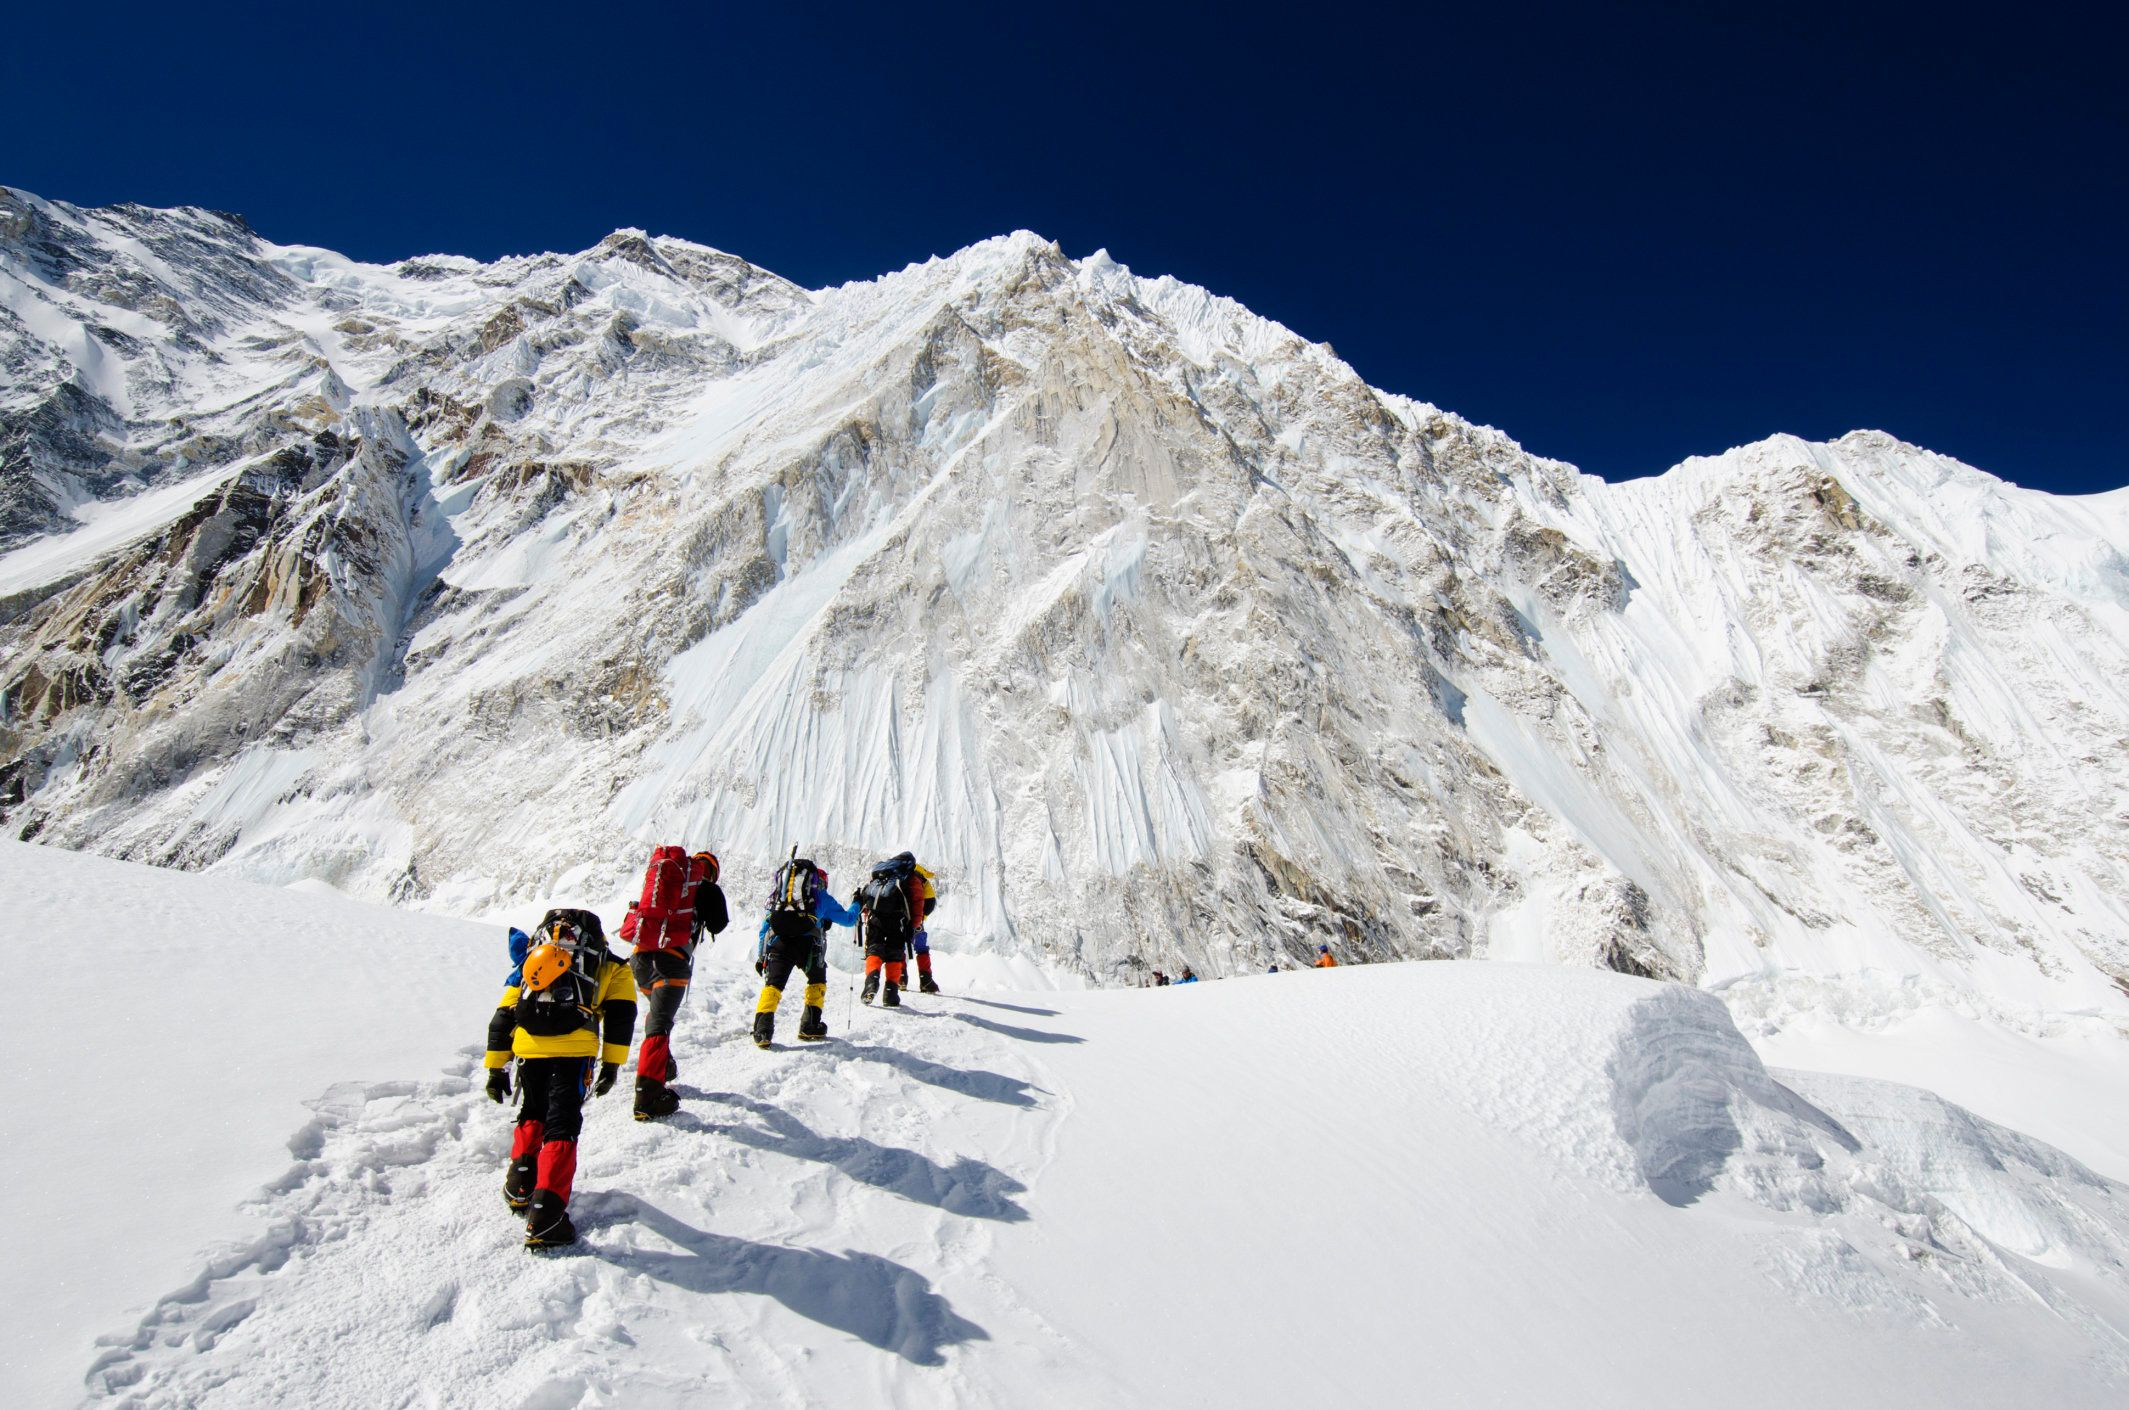 Climbers in the Solu Khumbu Everest region.